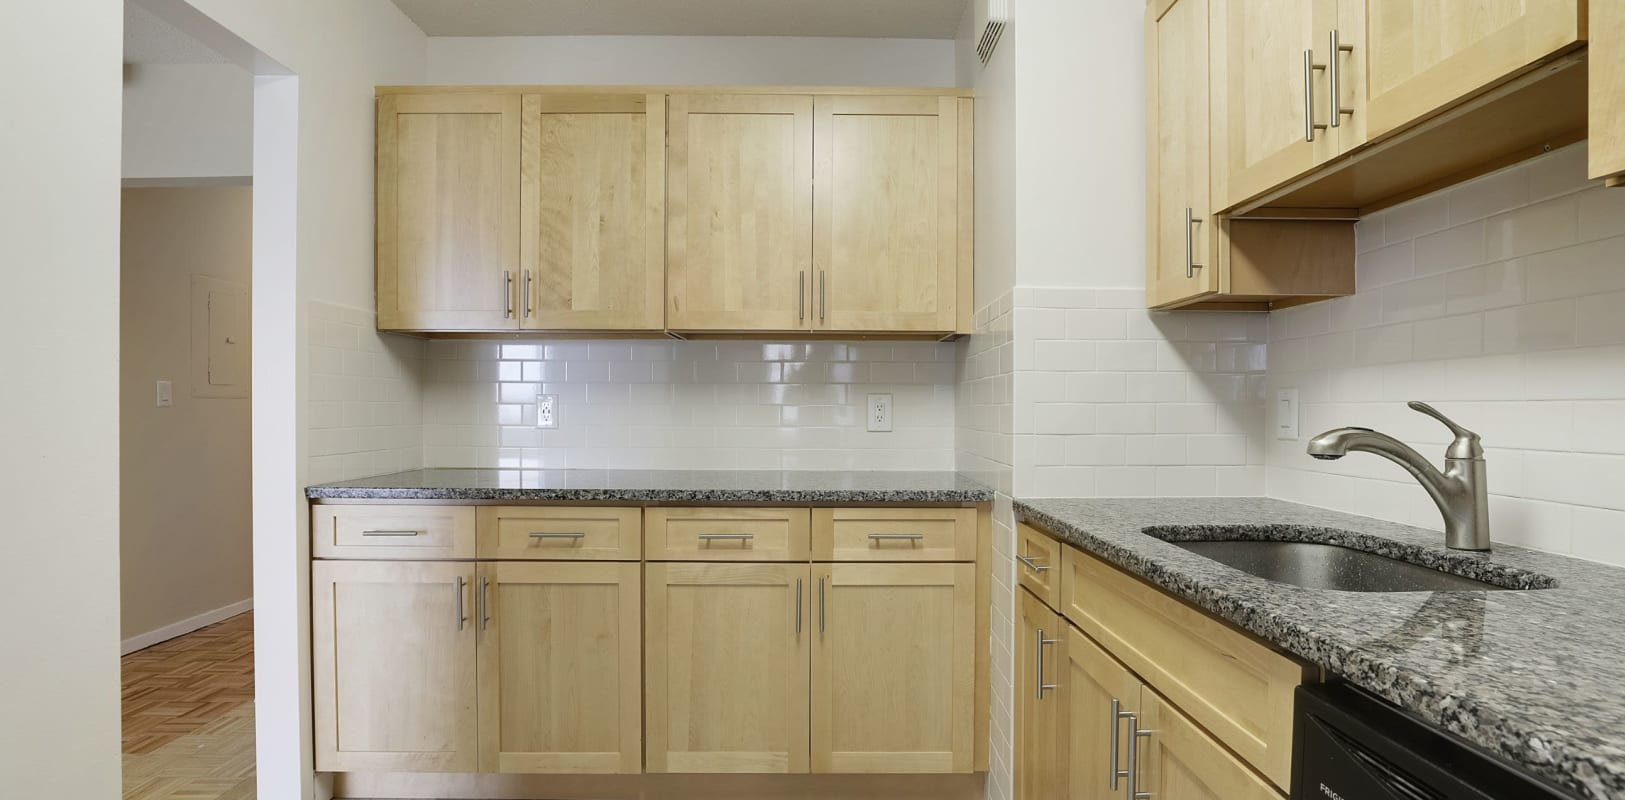 Fully equipped kitchen at 140 Prospect in Hackensack, New Jersey